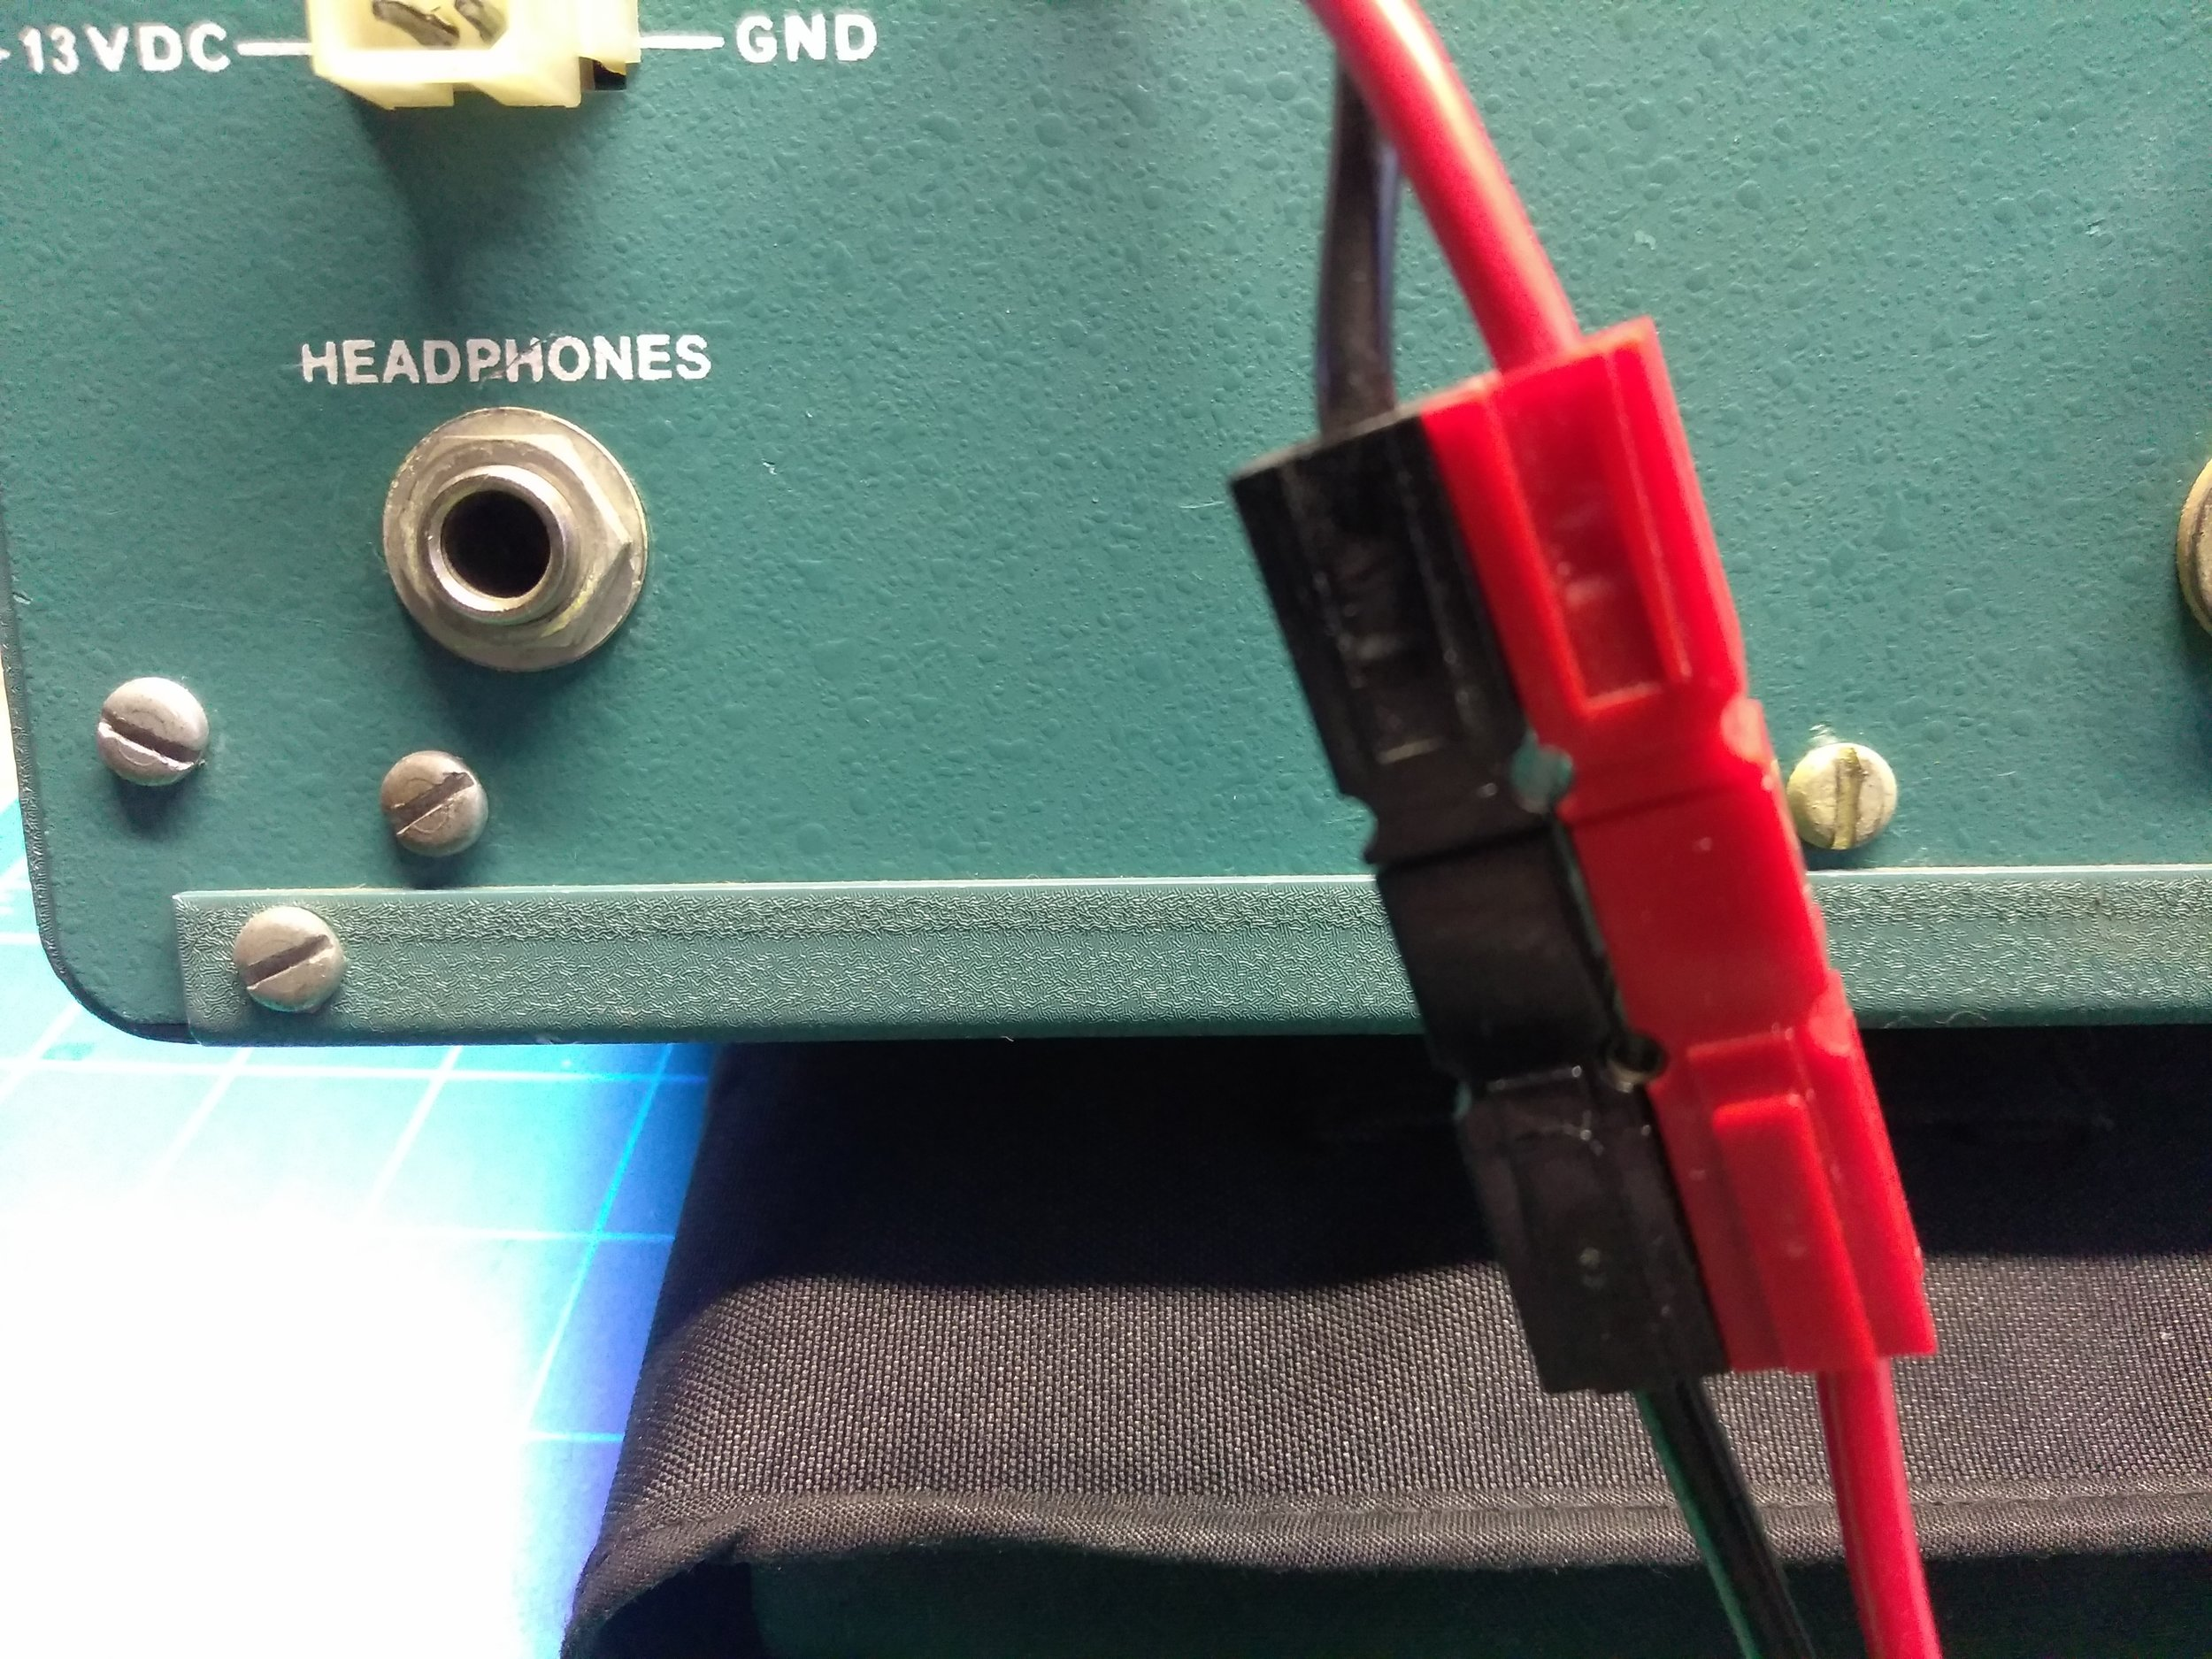 Powerpole Connectors added to radio and power supply